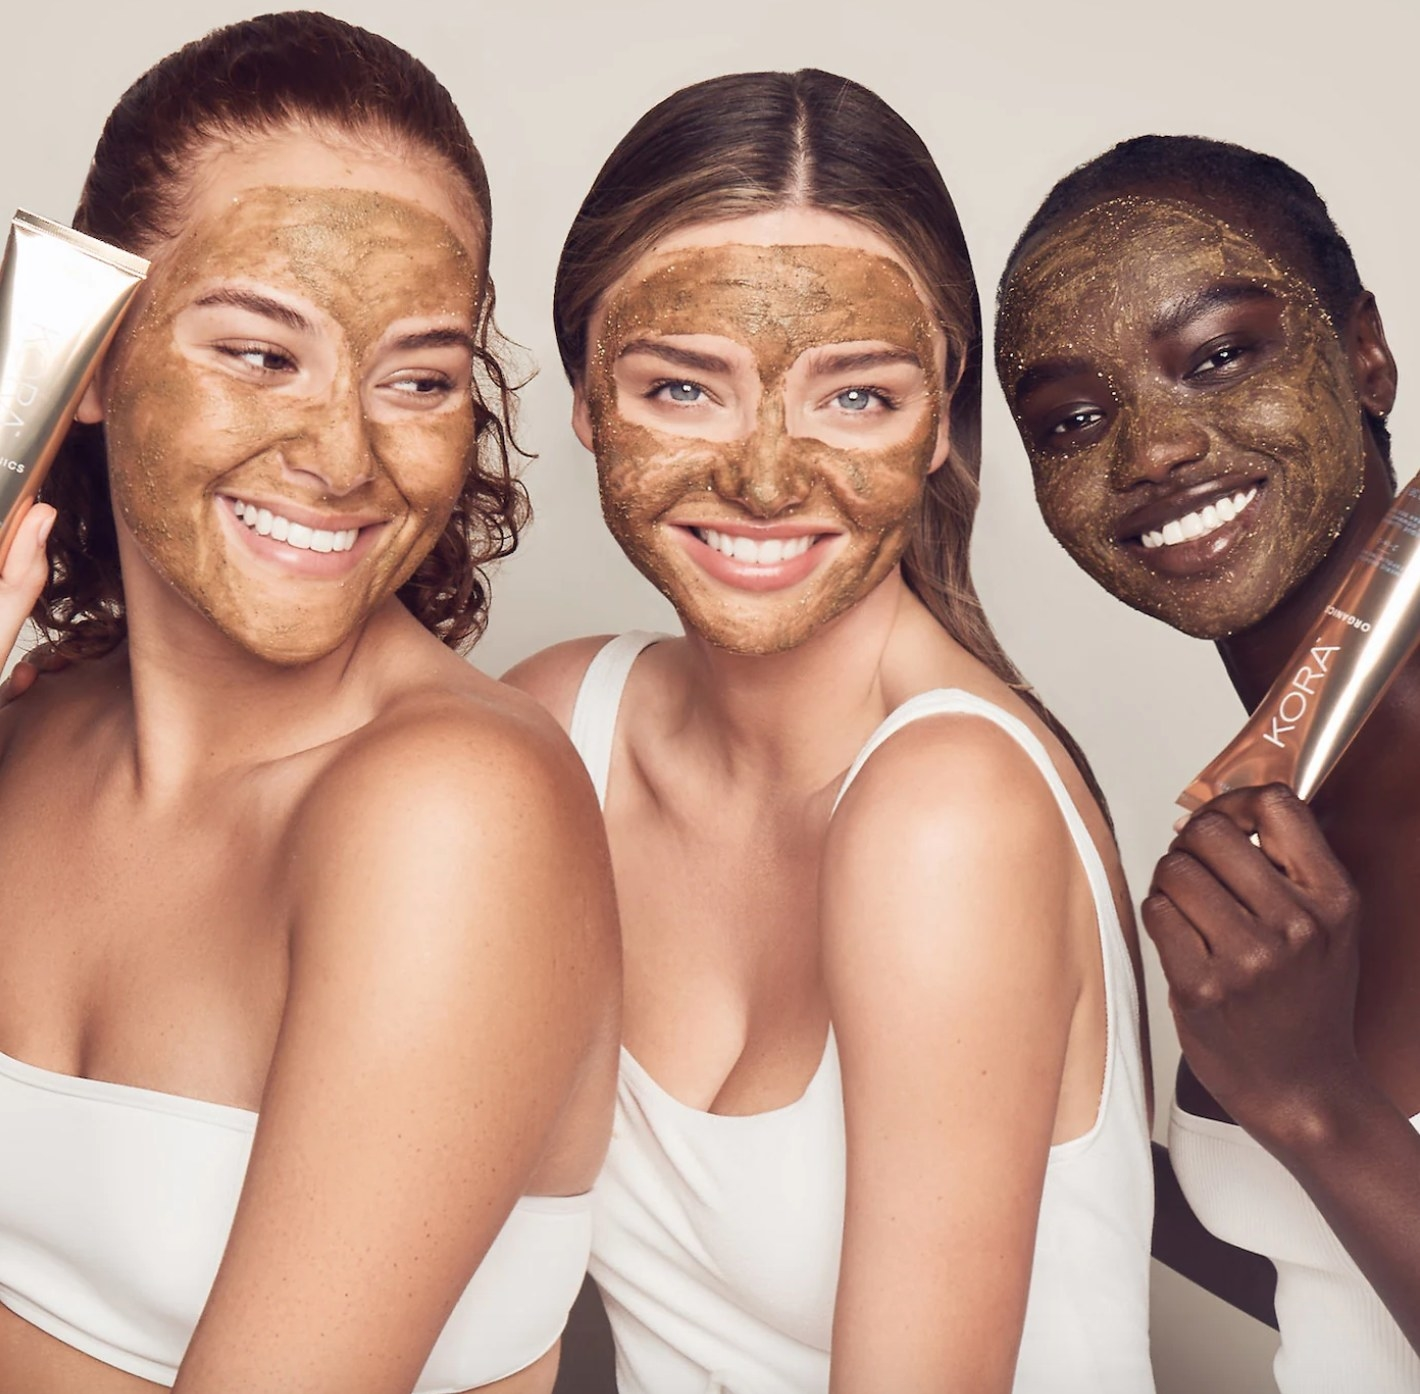 Miranda Kerr and two other models with Kora turmeric mask on their faces